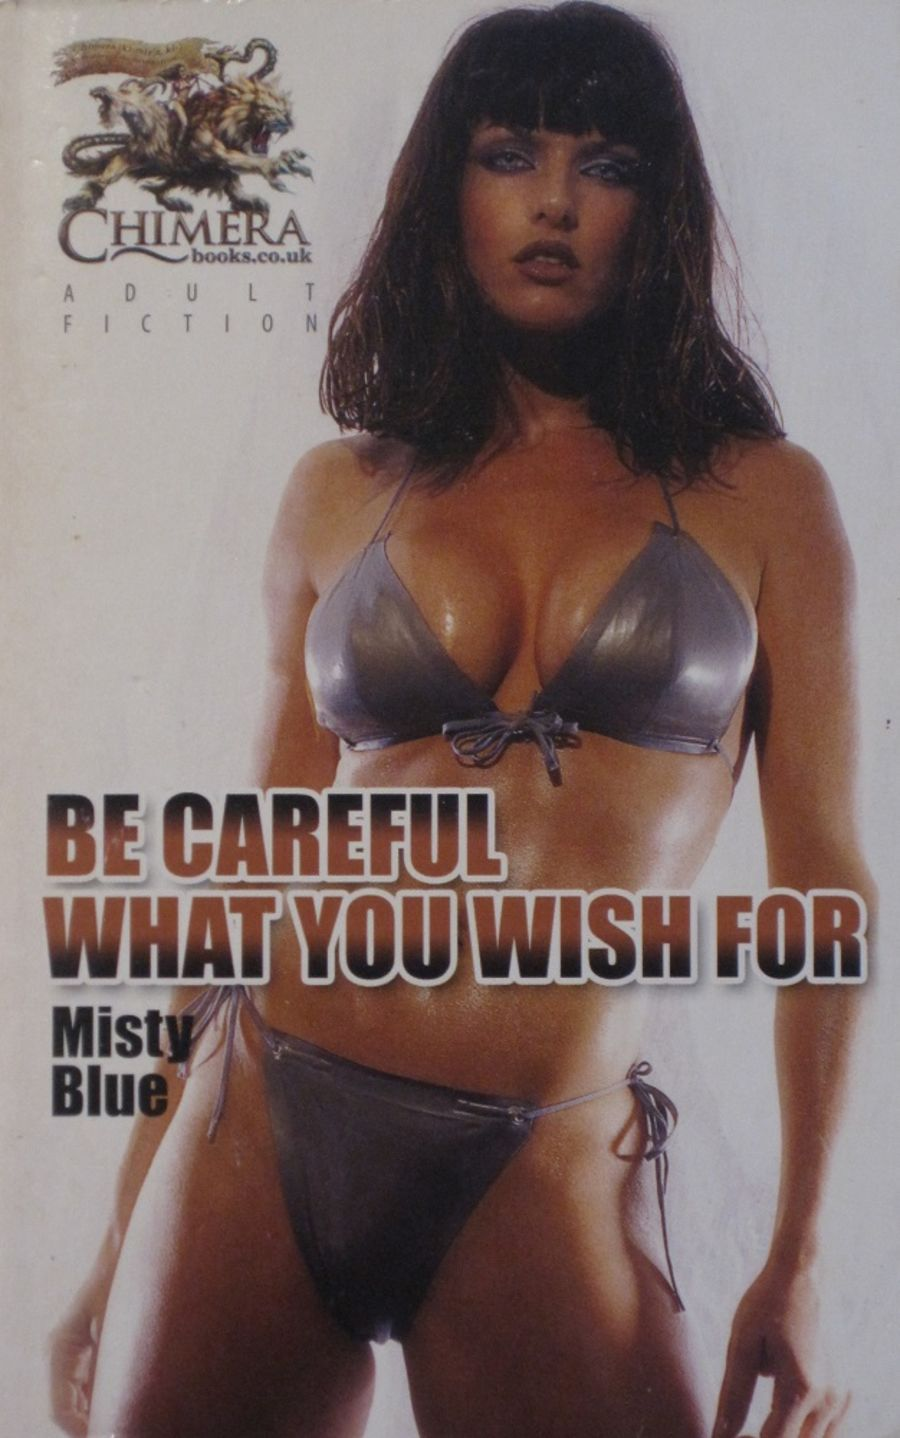 BE CAREFUL WHAT YOU WISH FOR.  2009 EROTIC FICTION PAPERBACK BOOK.